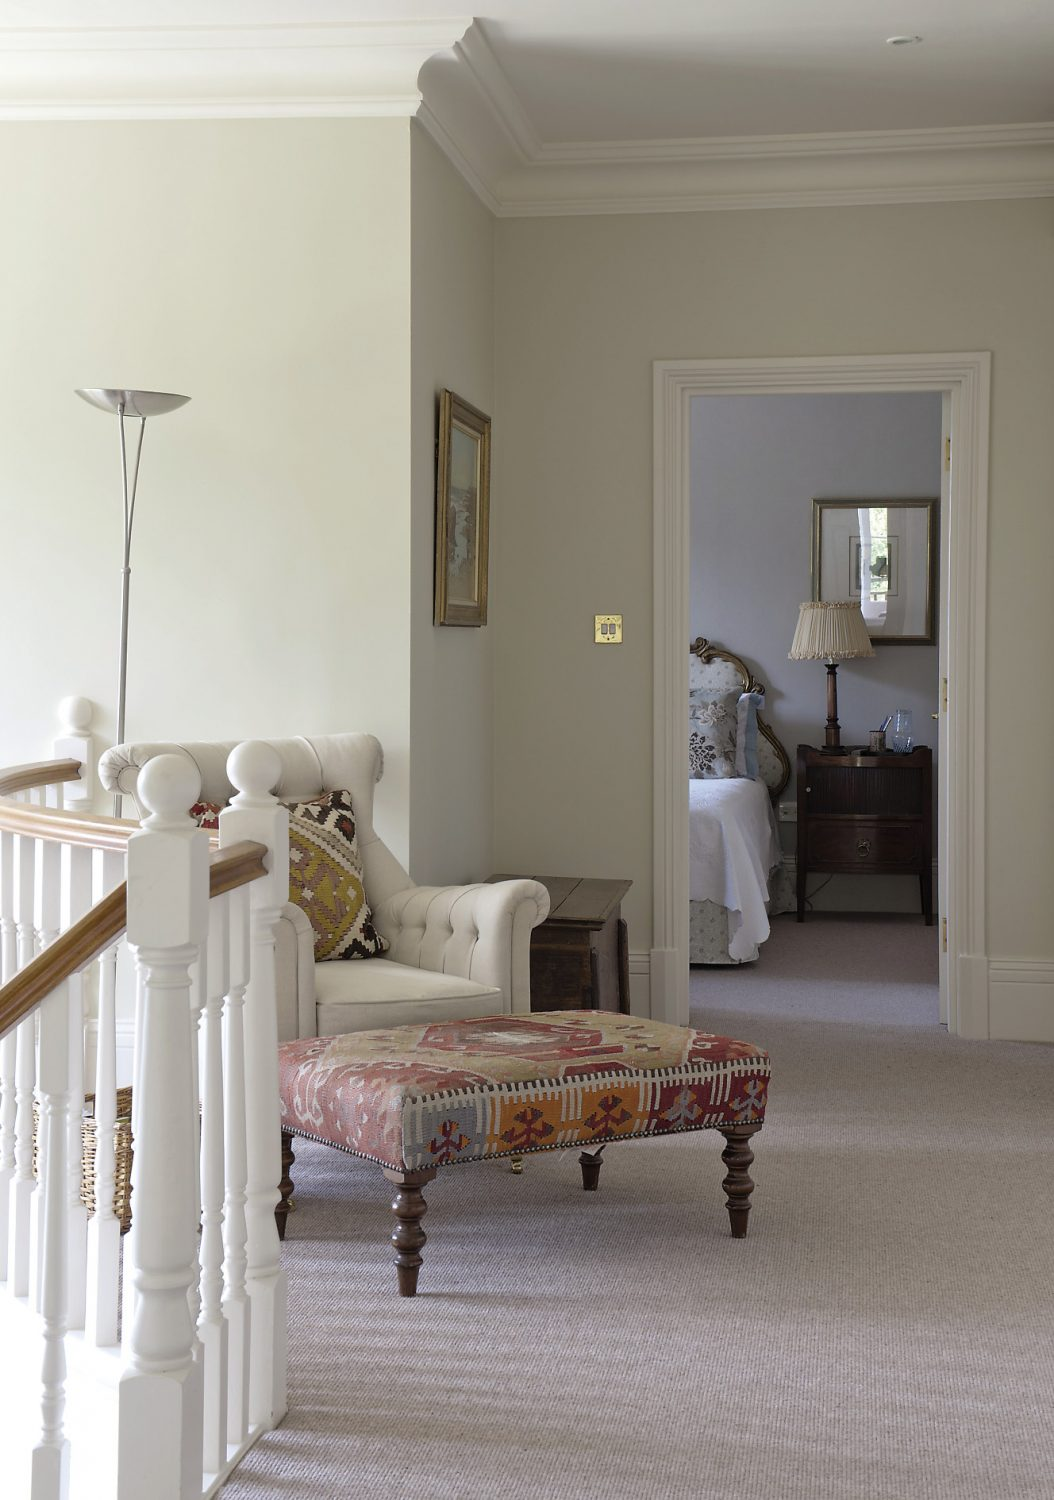 Across the landing, the guest bedroom features a gilded three-armed chandelier with forget-me-not blue silk shades covering the candle bulbs. A huge painted armoire from Portugal has three large blue and white jars from northern Portugal on the top